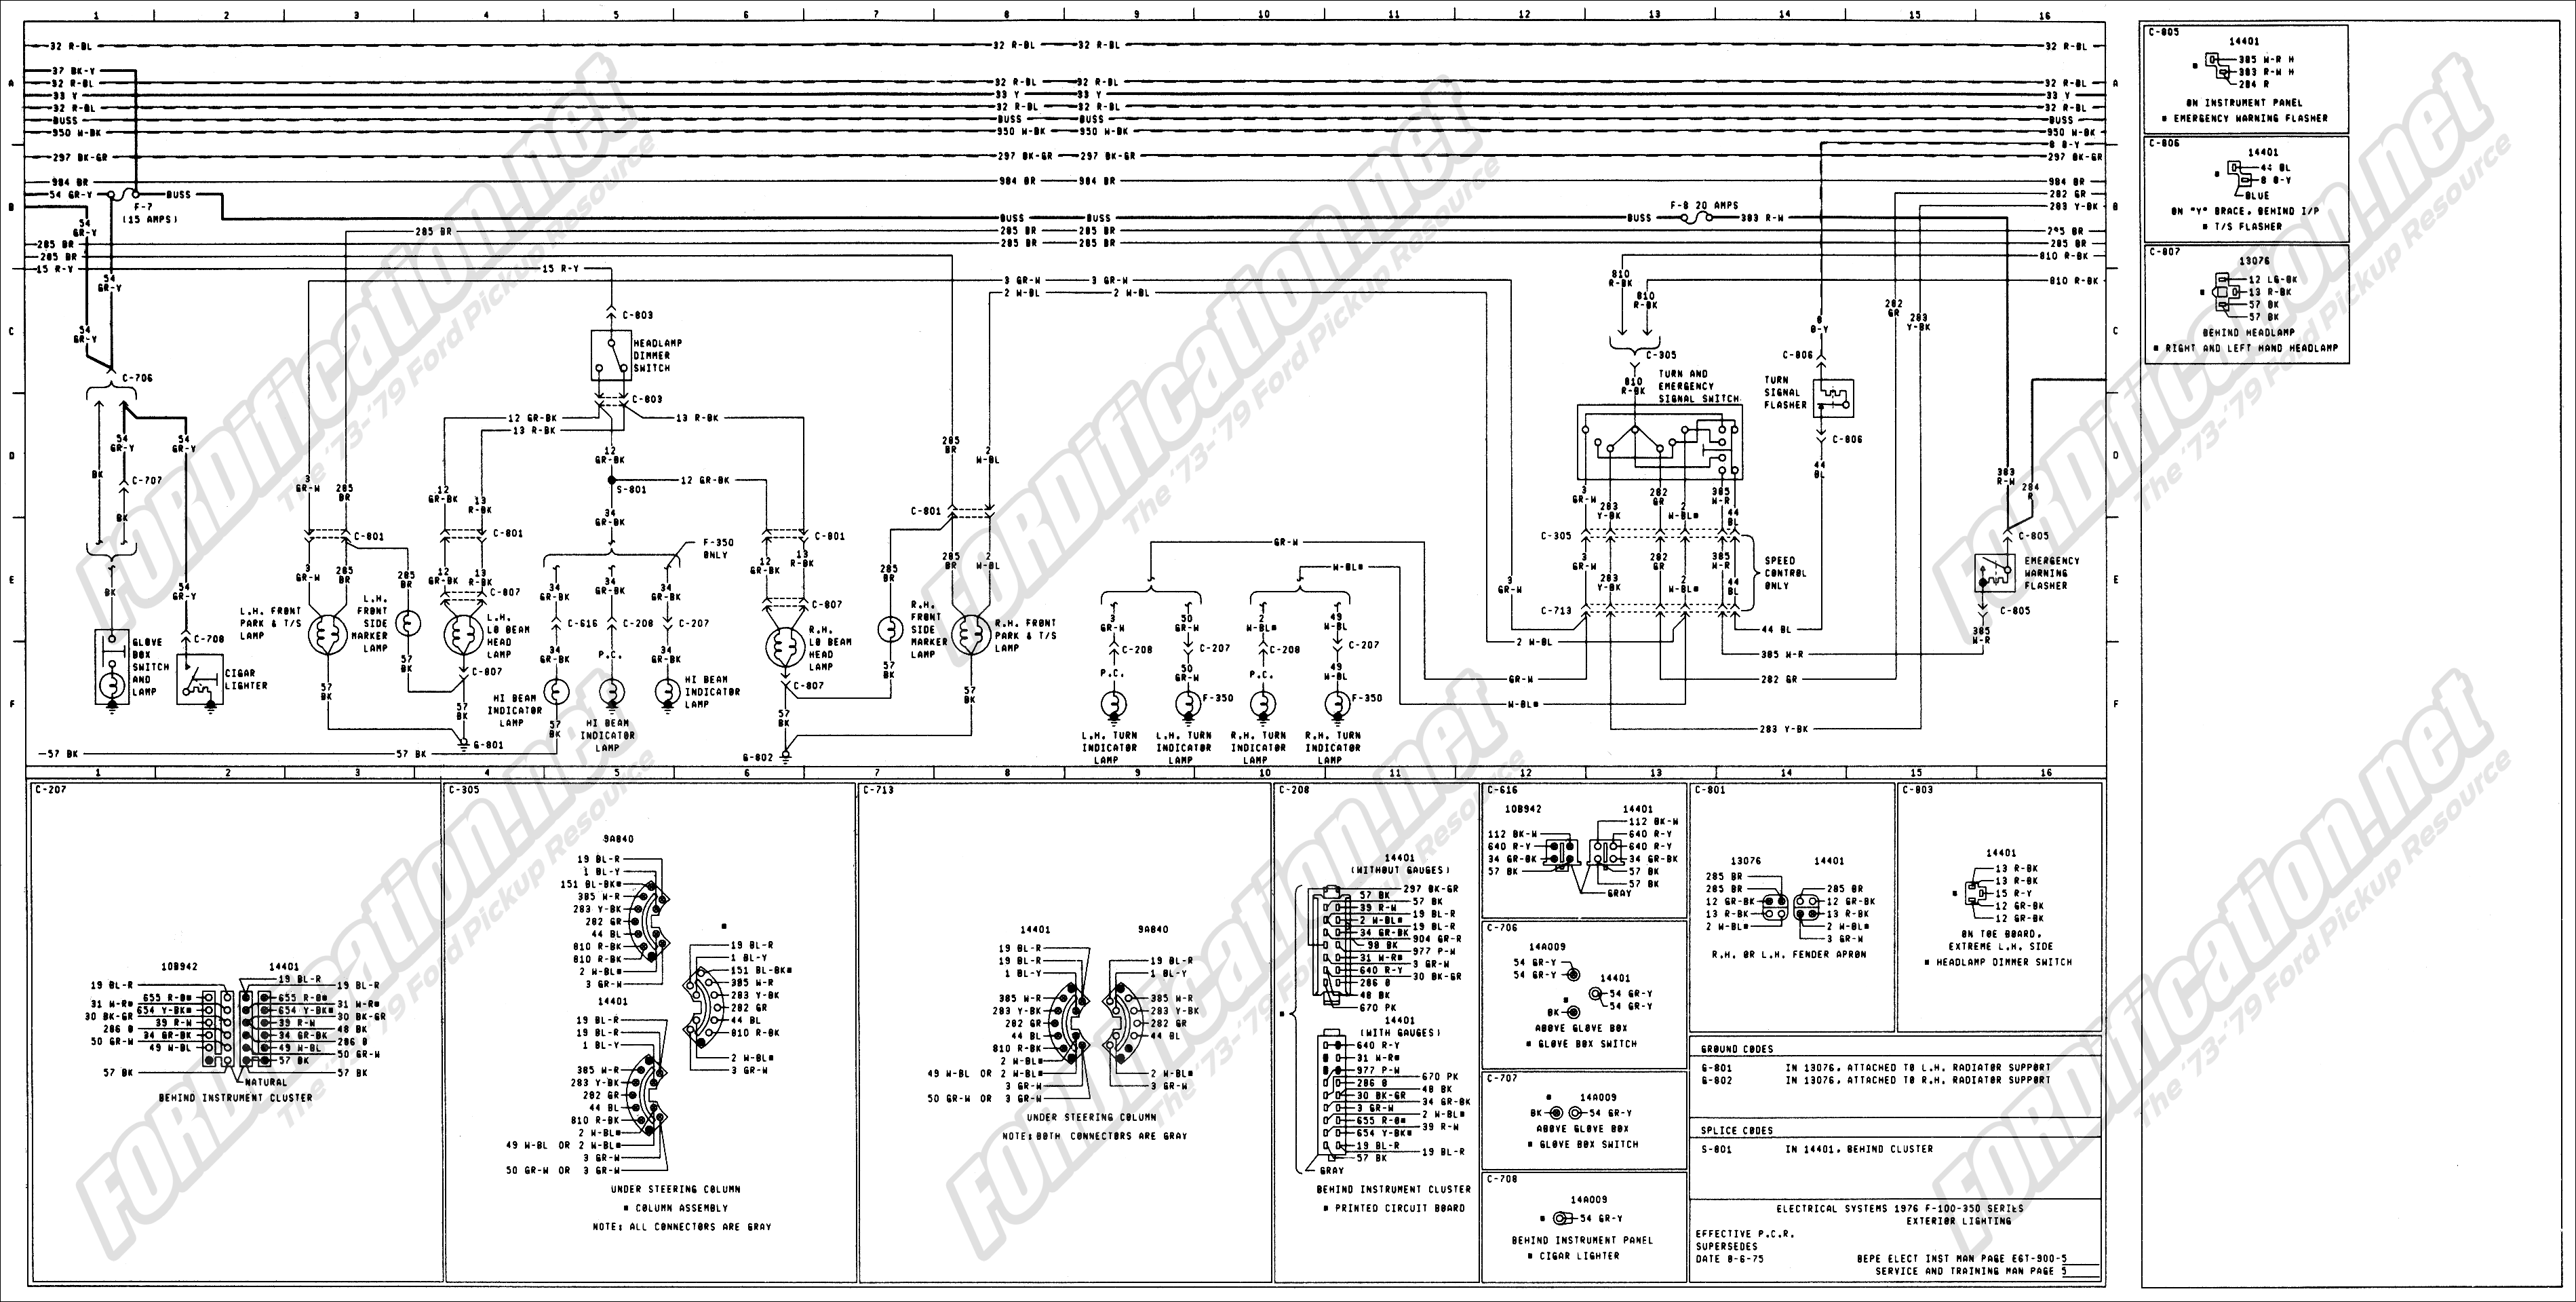 1973 1979 ford truck wiring diagrams schematics fordification net rh fordification net 78 ford f250 instrument cluster wiring diagram 1978 ford f250 tail light wiring diagram